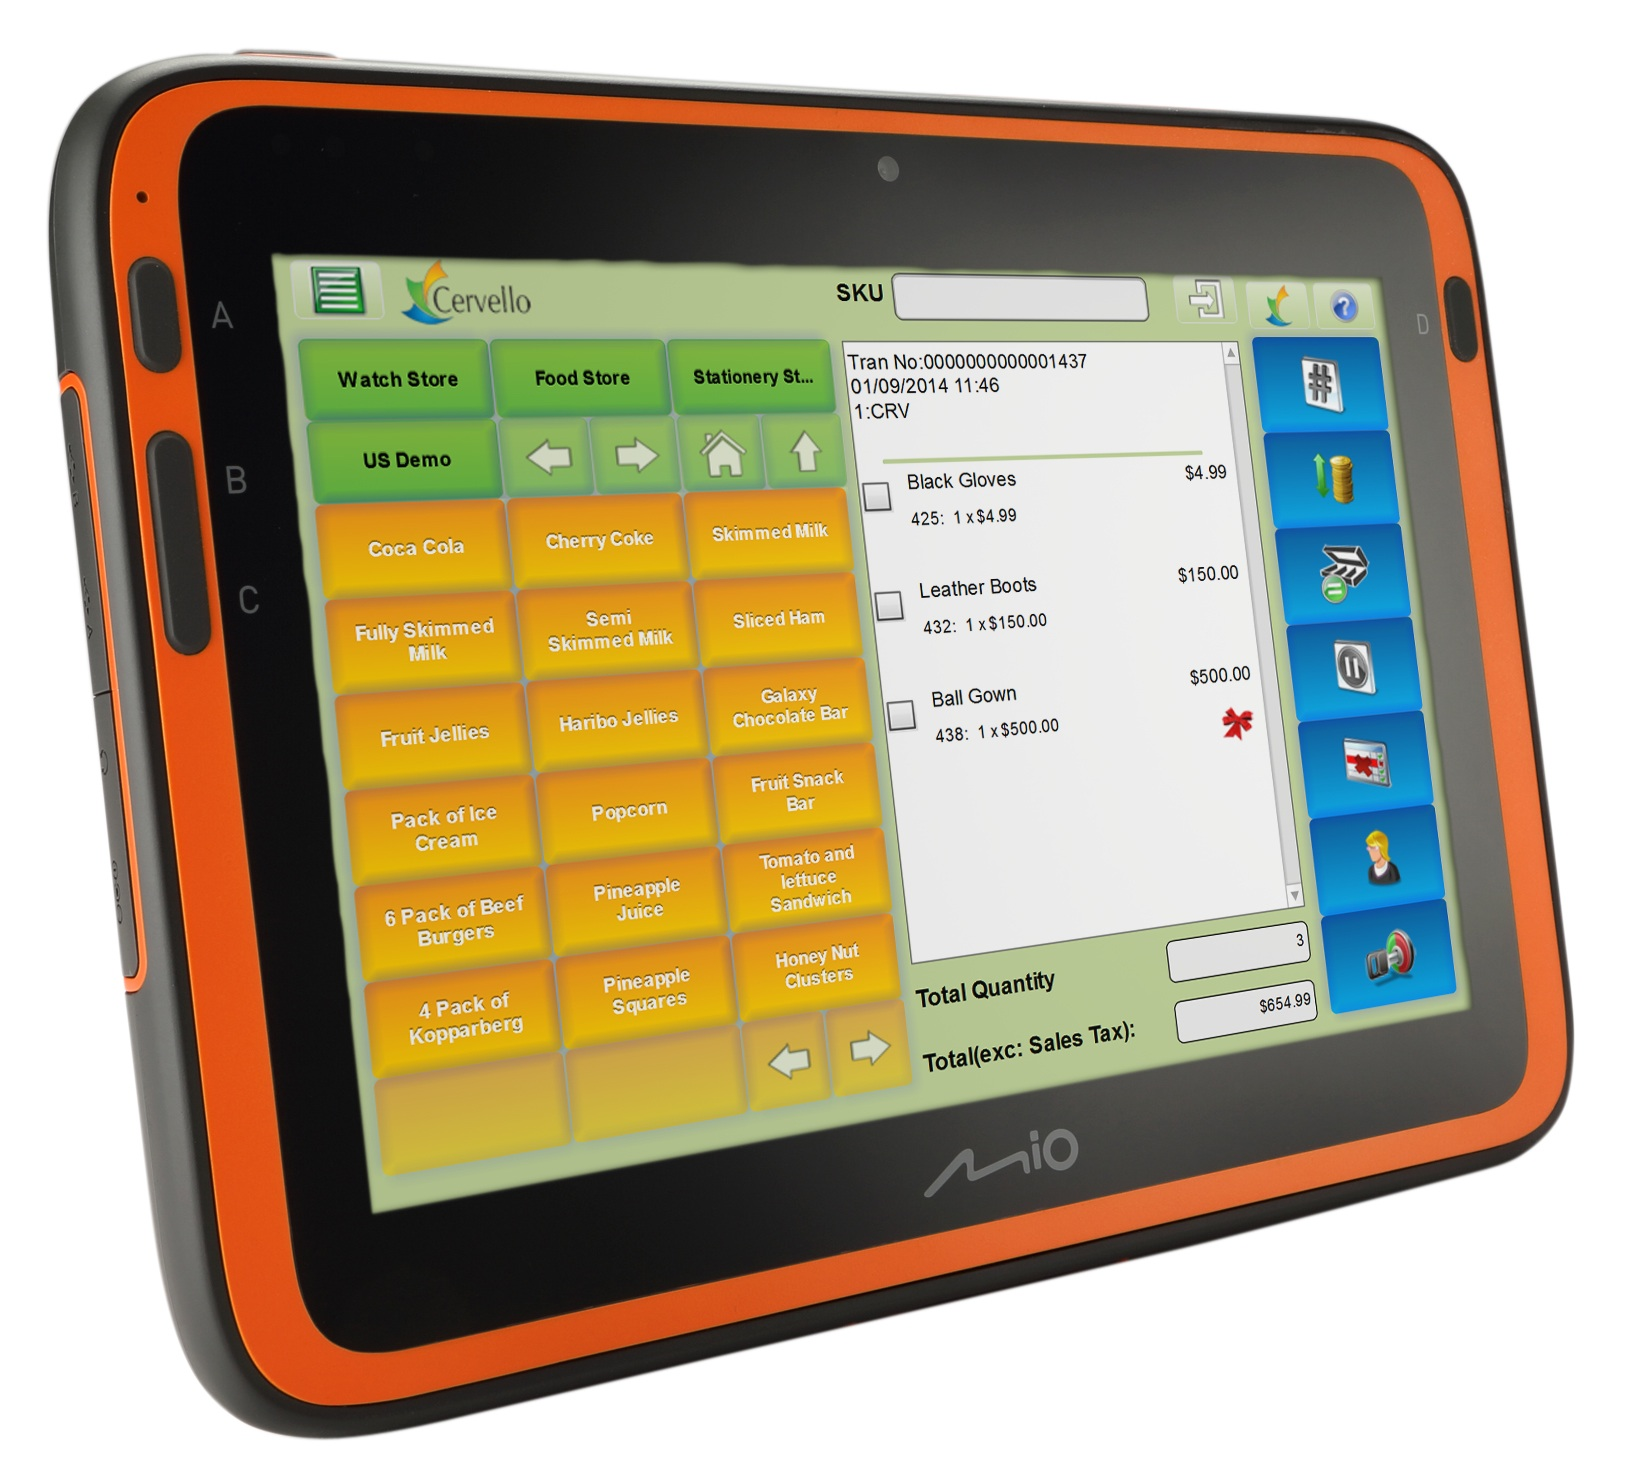 New semi-rugged tablet aimed at retail use